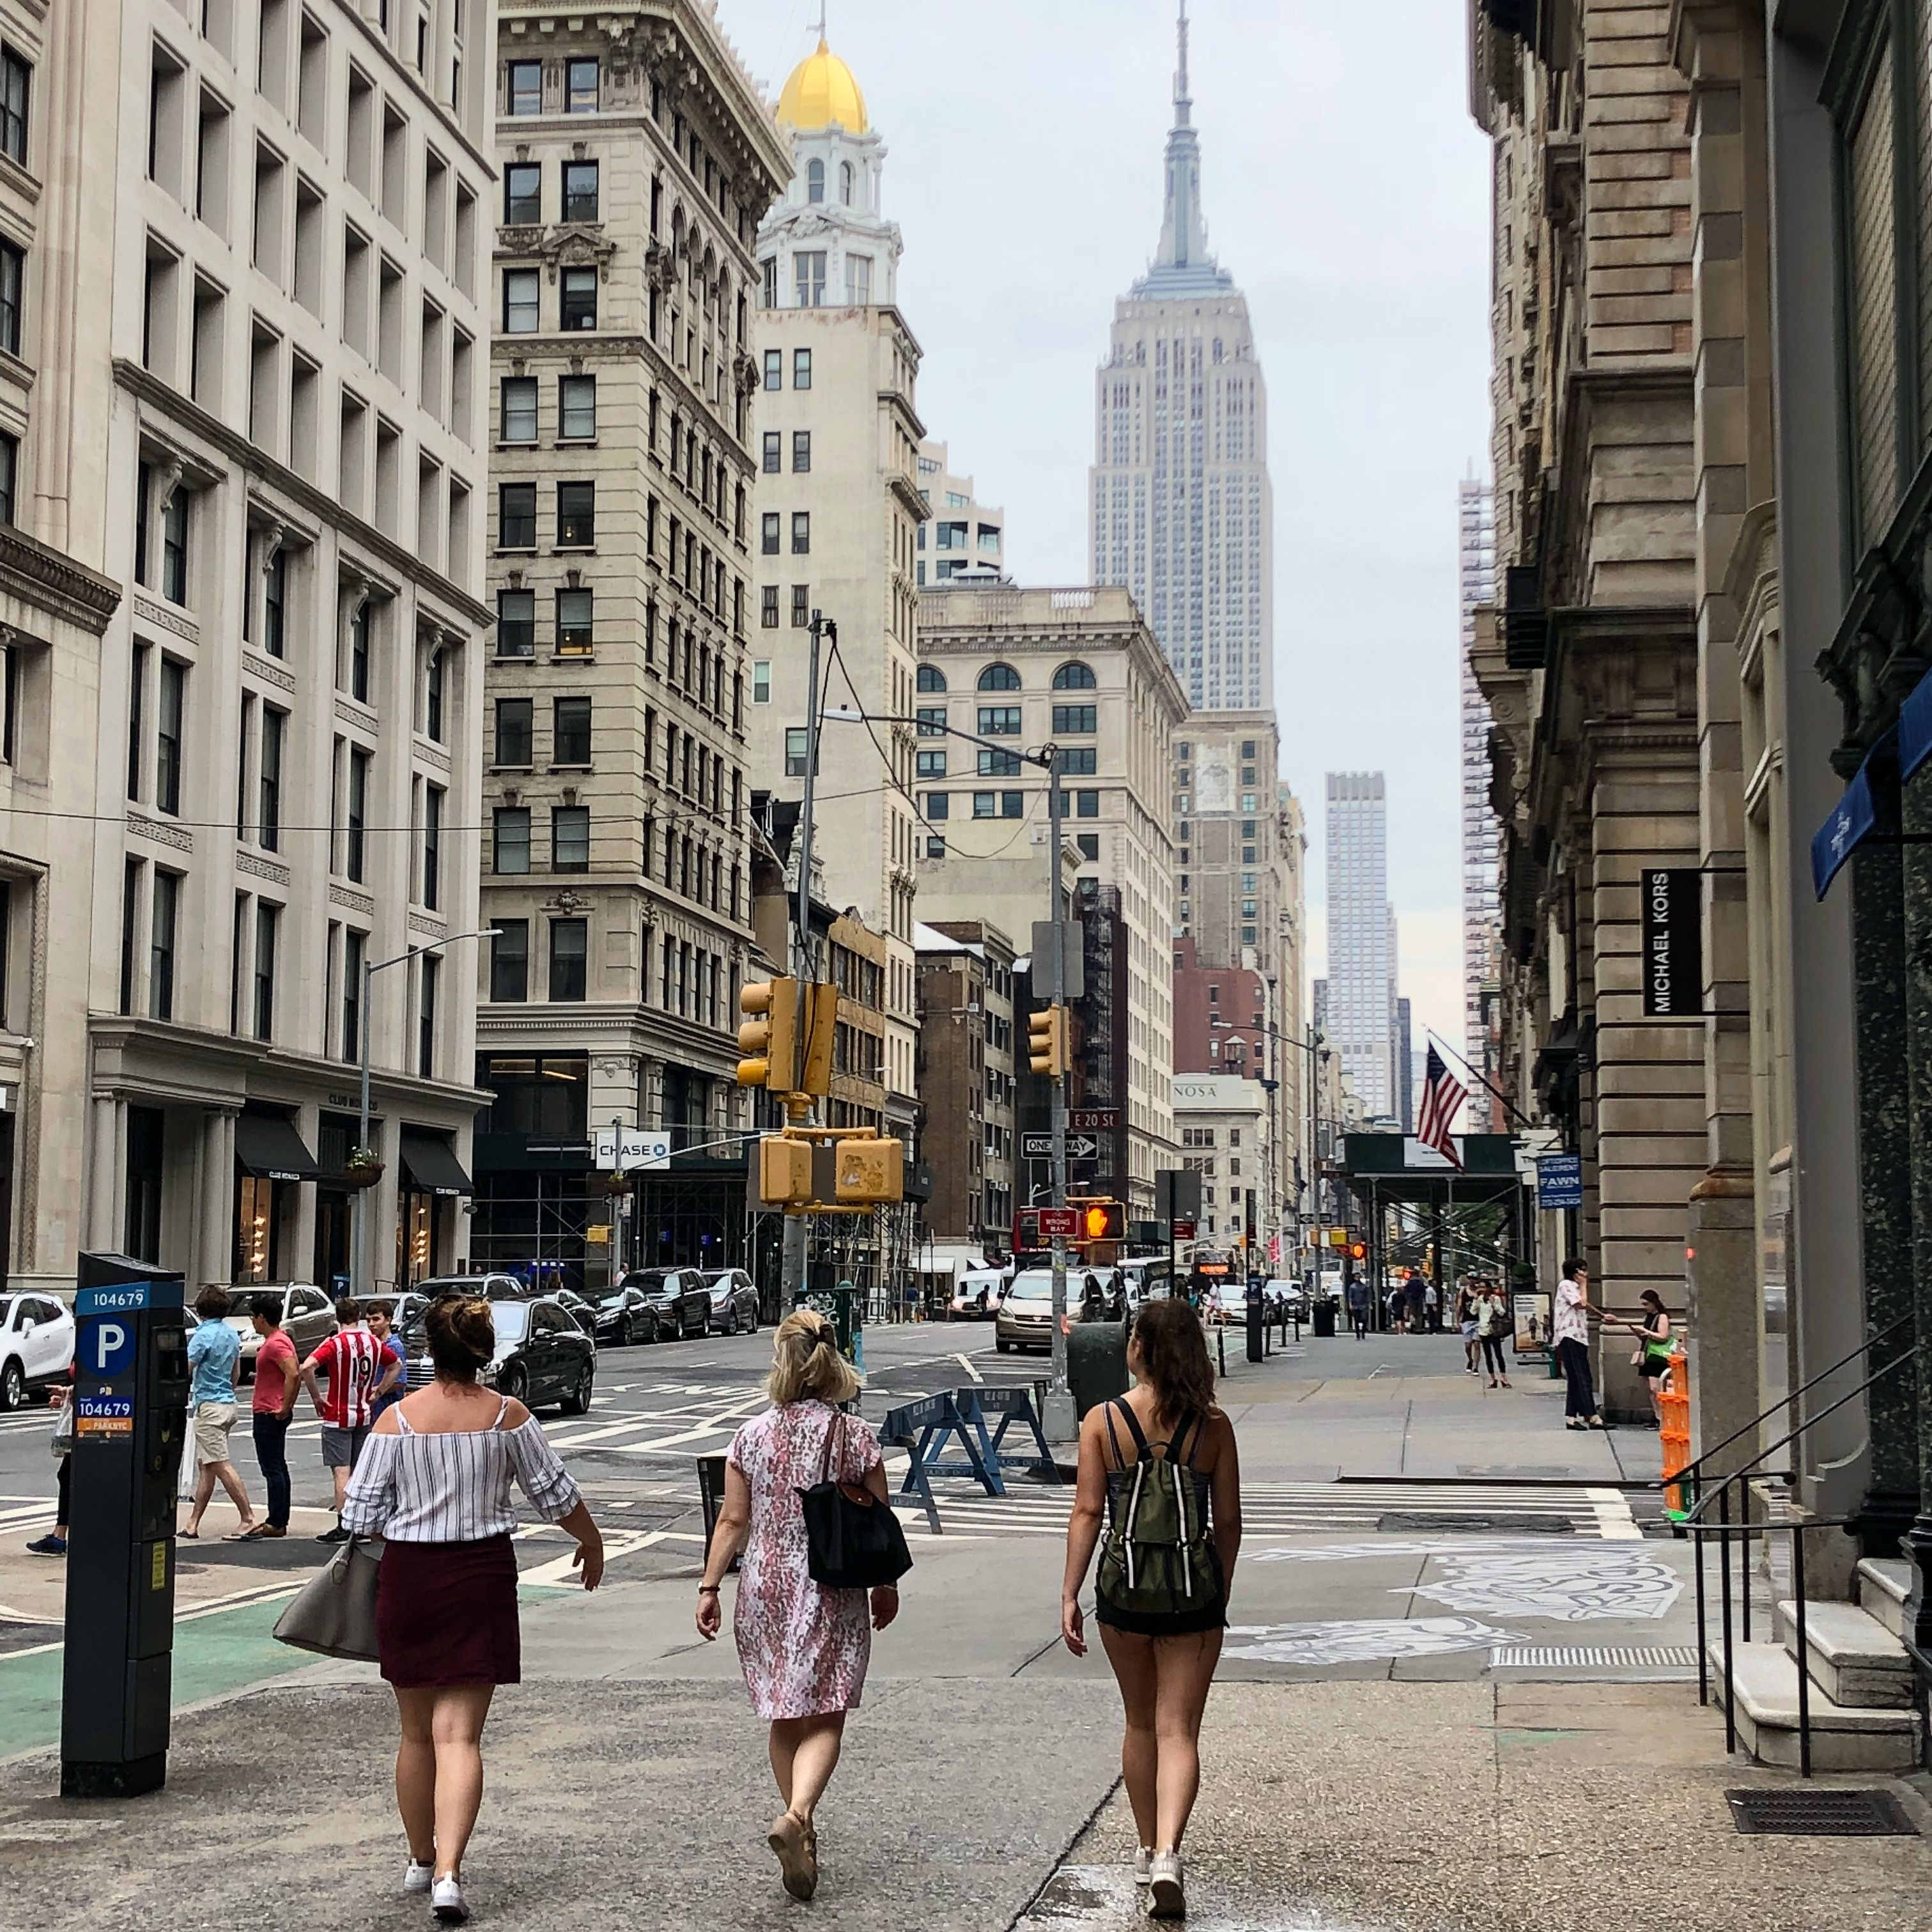 Shopping on 5th Avenue